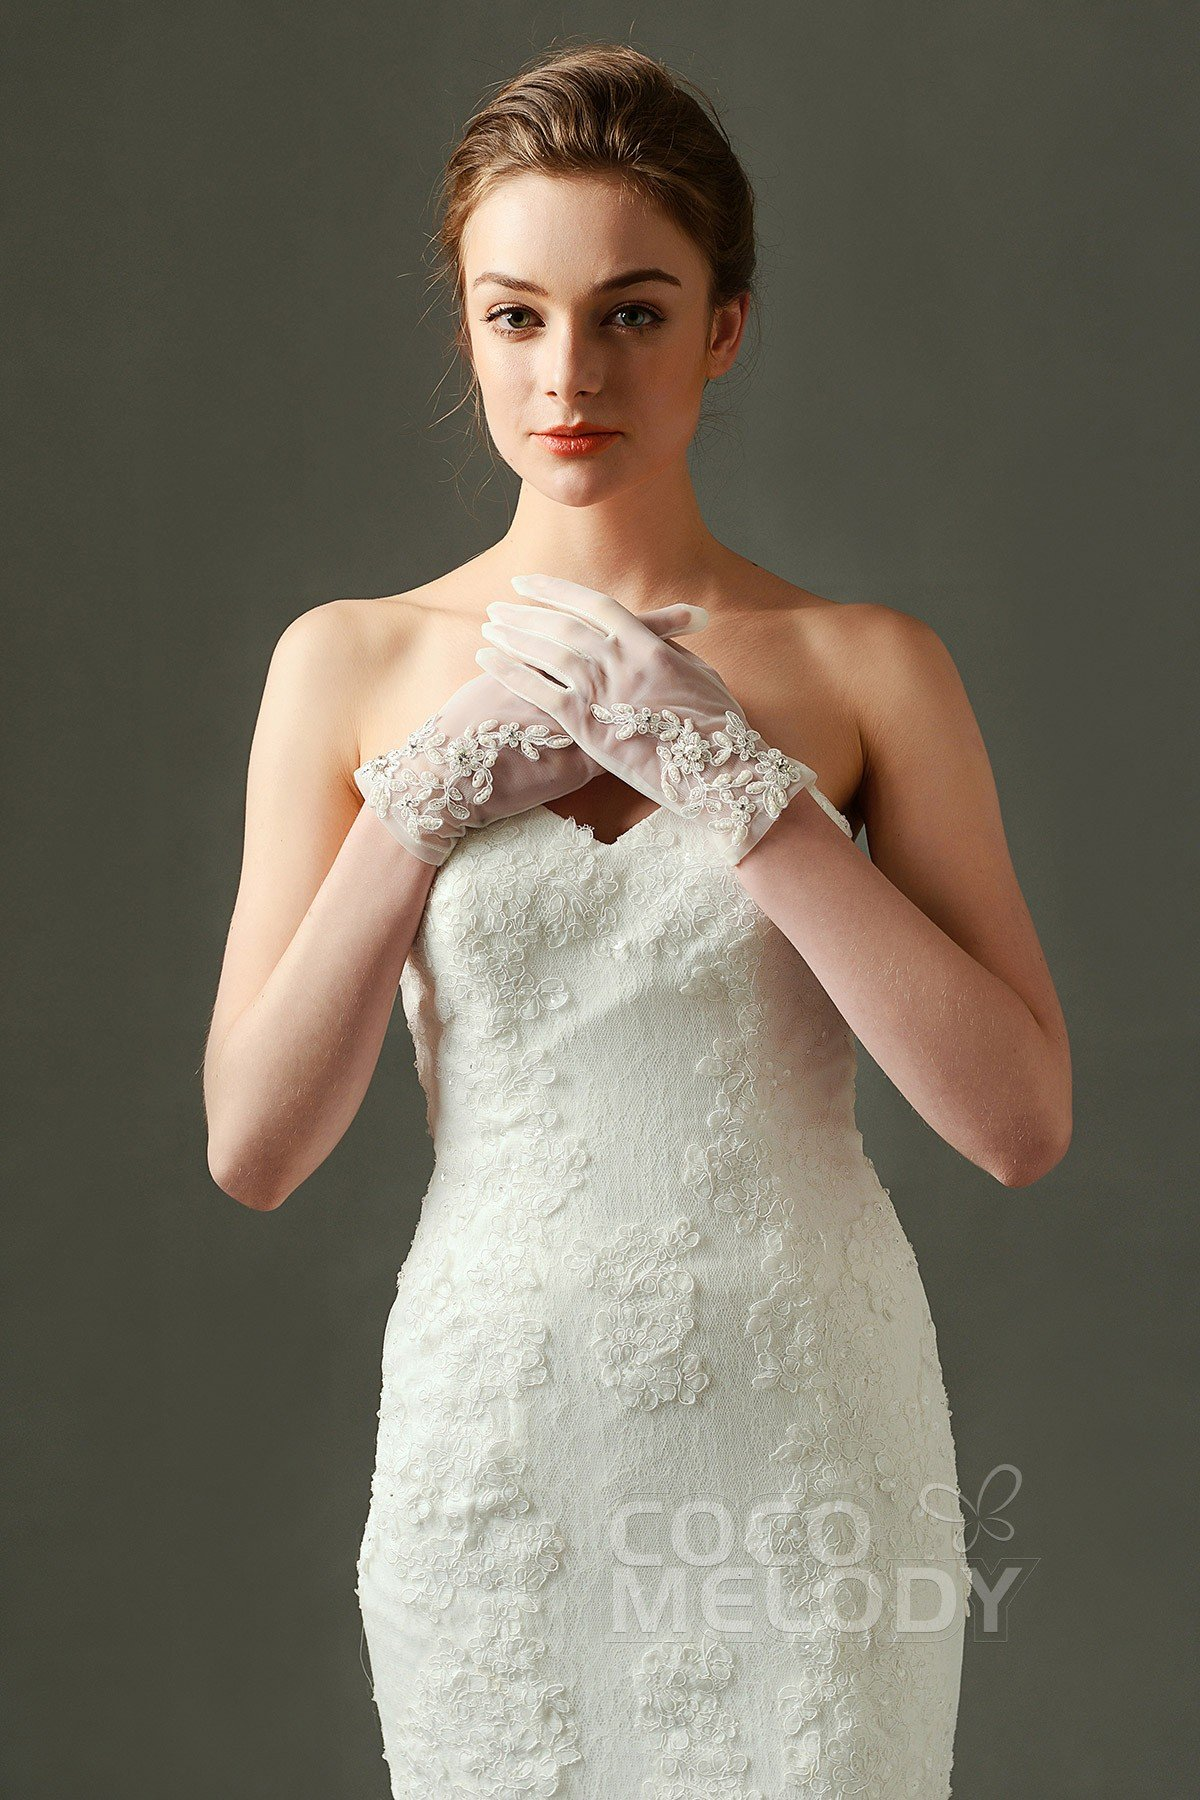 Fingertips Wrist Length Tulle and Lace Ivory 23cm Wedding Gloves with Appliques and Beading ST160008